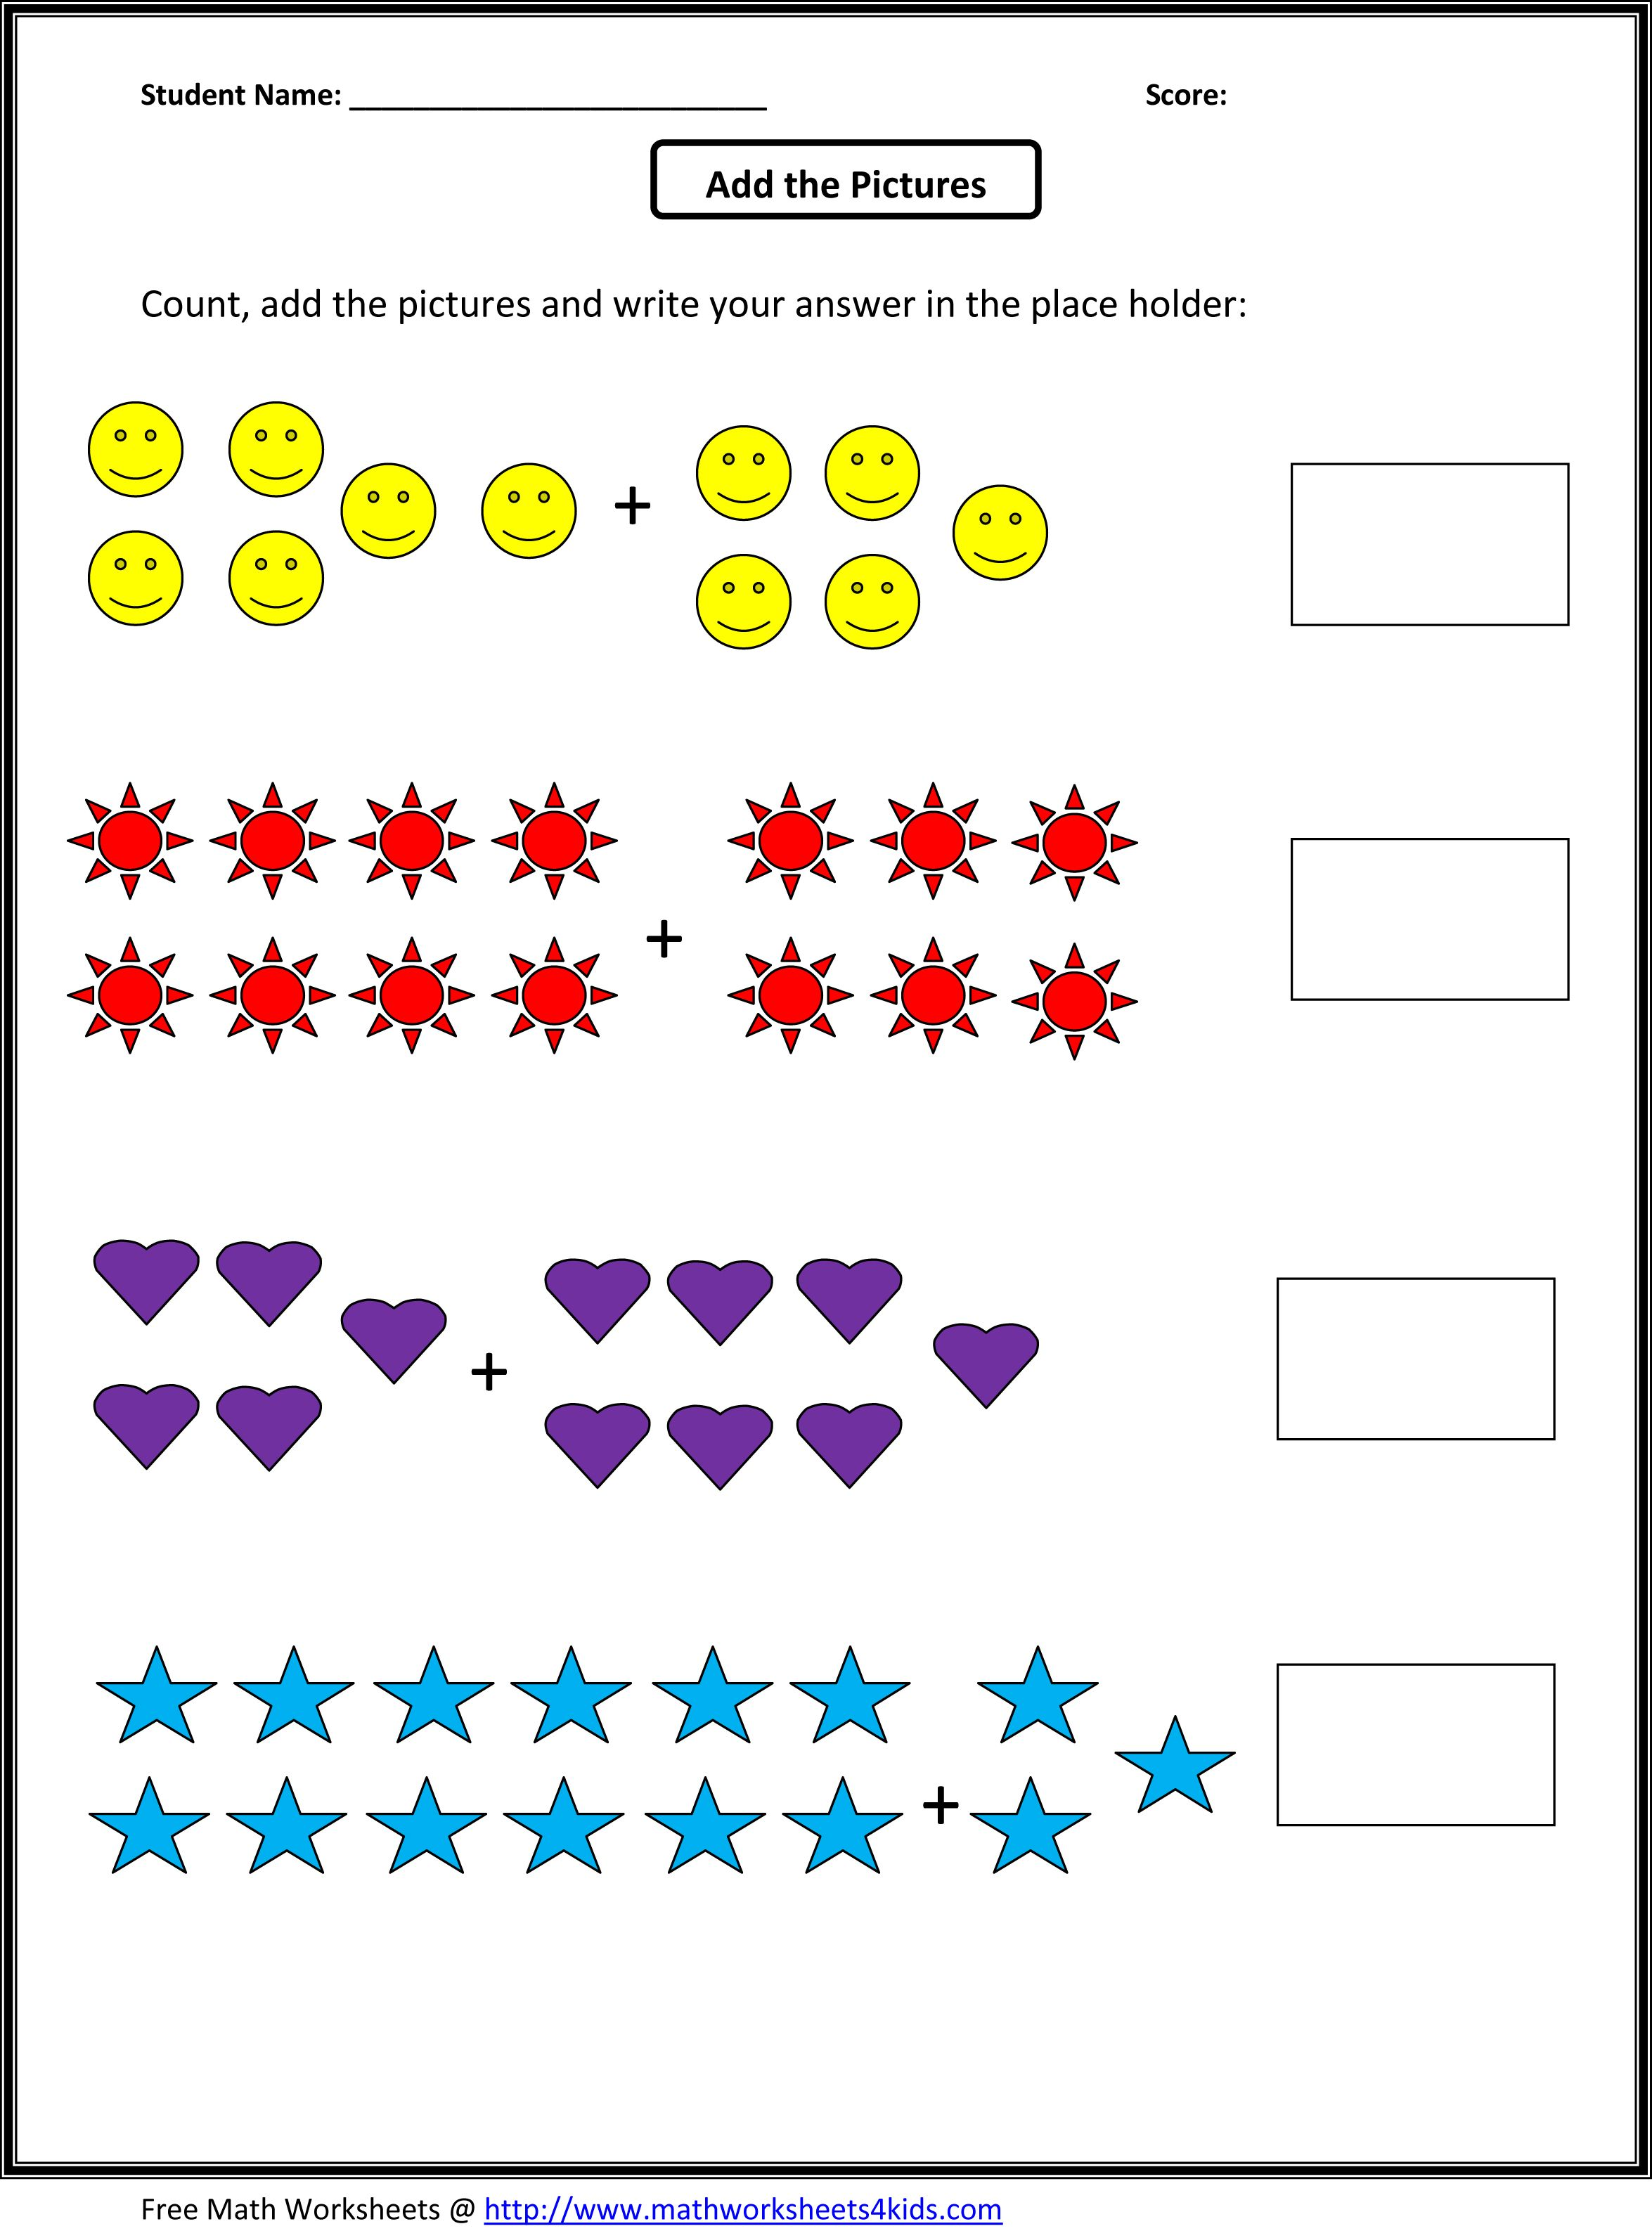 Aldiablosus  Stunning Worksheet For Math Grade   Coffemix With Gorgeous  Images About School On Pinterest  Mental Maths Worksheets  With Comely Economics For Kids Worksheets Also Letter I Worksheets Kindergarten In Addition First Grade Punctuation Worksheets And Geometry Triangle Worksheets As Well As Free Printable Letter A Worksheets Additionally Math Excel Worksheets From Coffemixcom With Aldiablosus  Gorgeous Worksheet For Math Grade   Coffemix With Comely  Images About School On Pinterest  Mental Maths Worksheets  And Stunning Economics For Kids Worksheets Also Letter I Worksheets Kindergarten In Addition First Grade Punctuation Worksheets From Coffemixcom